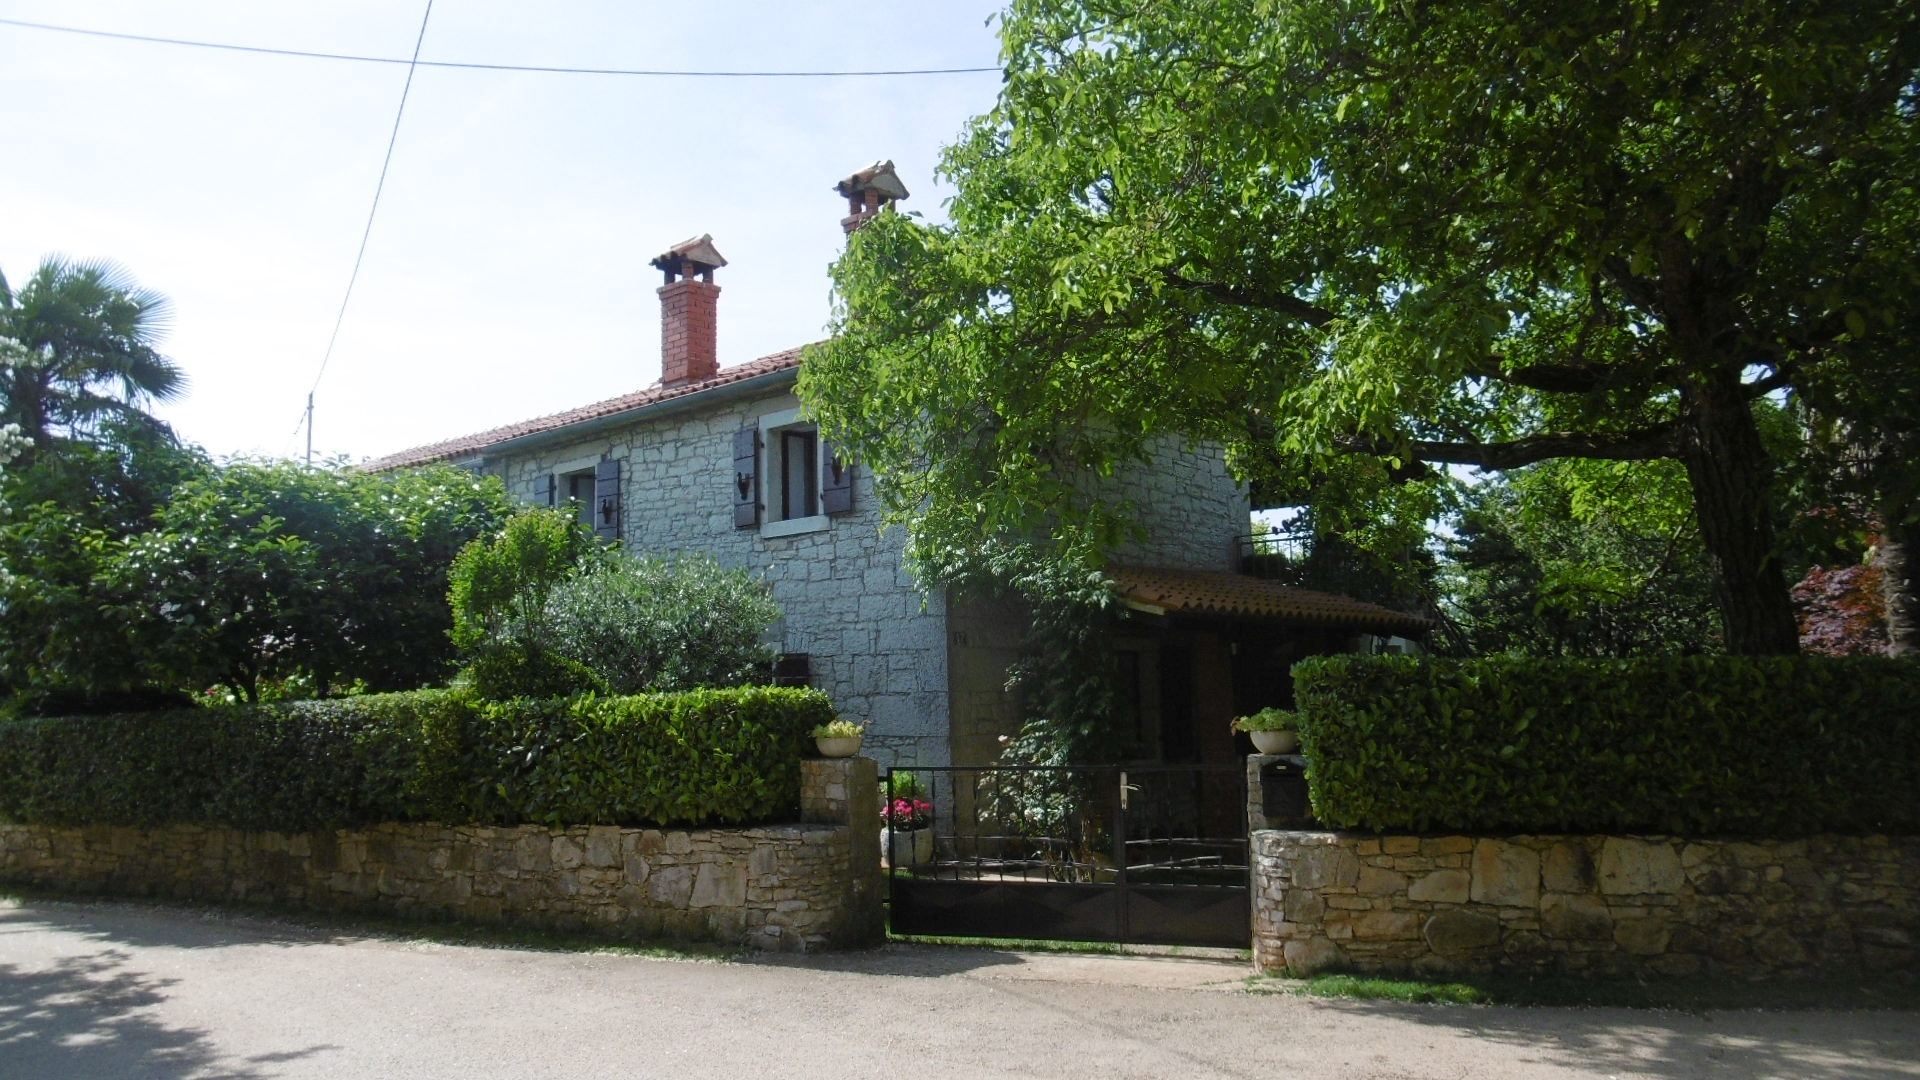 Z-881 Property with 2 stone houses, 4.550 m² of land and 77,000 m² agricultural land in a small village, quiet location